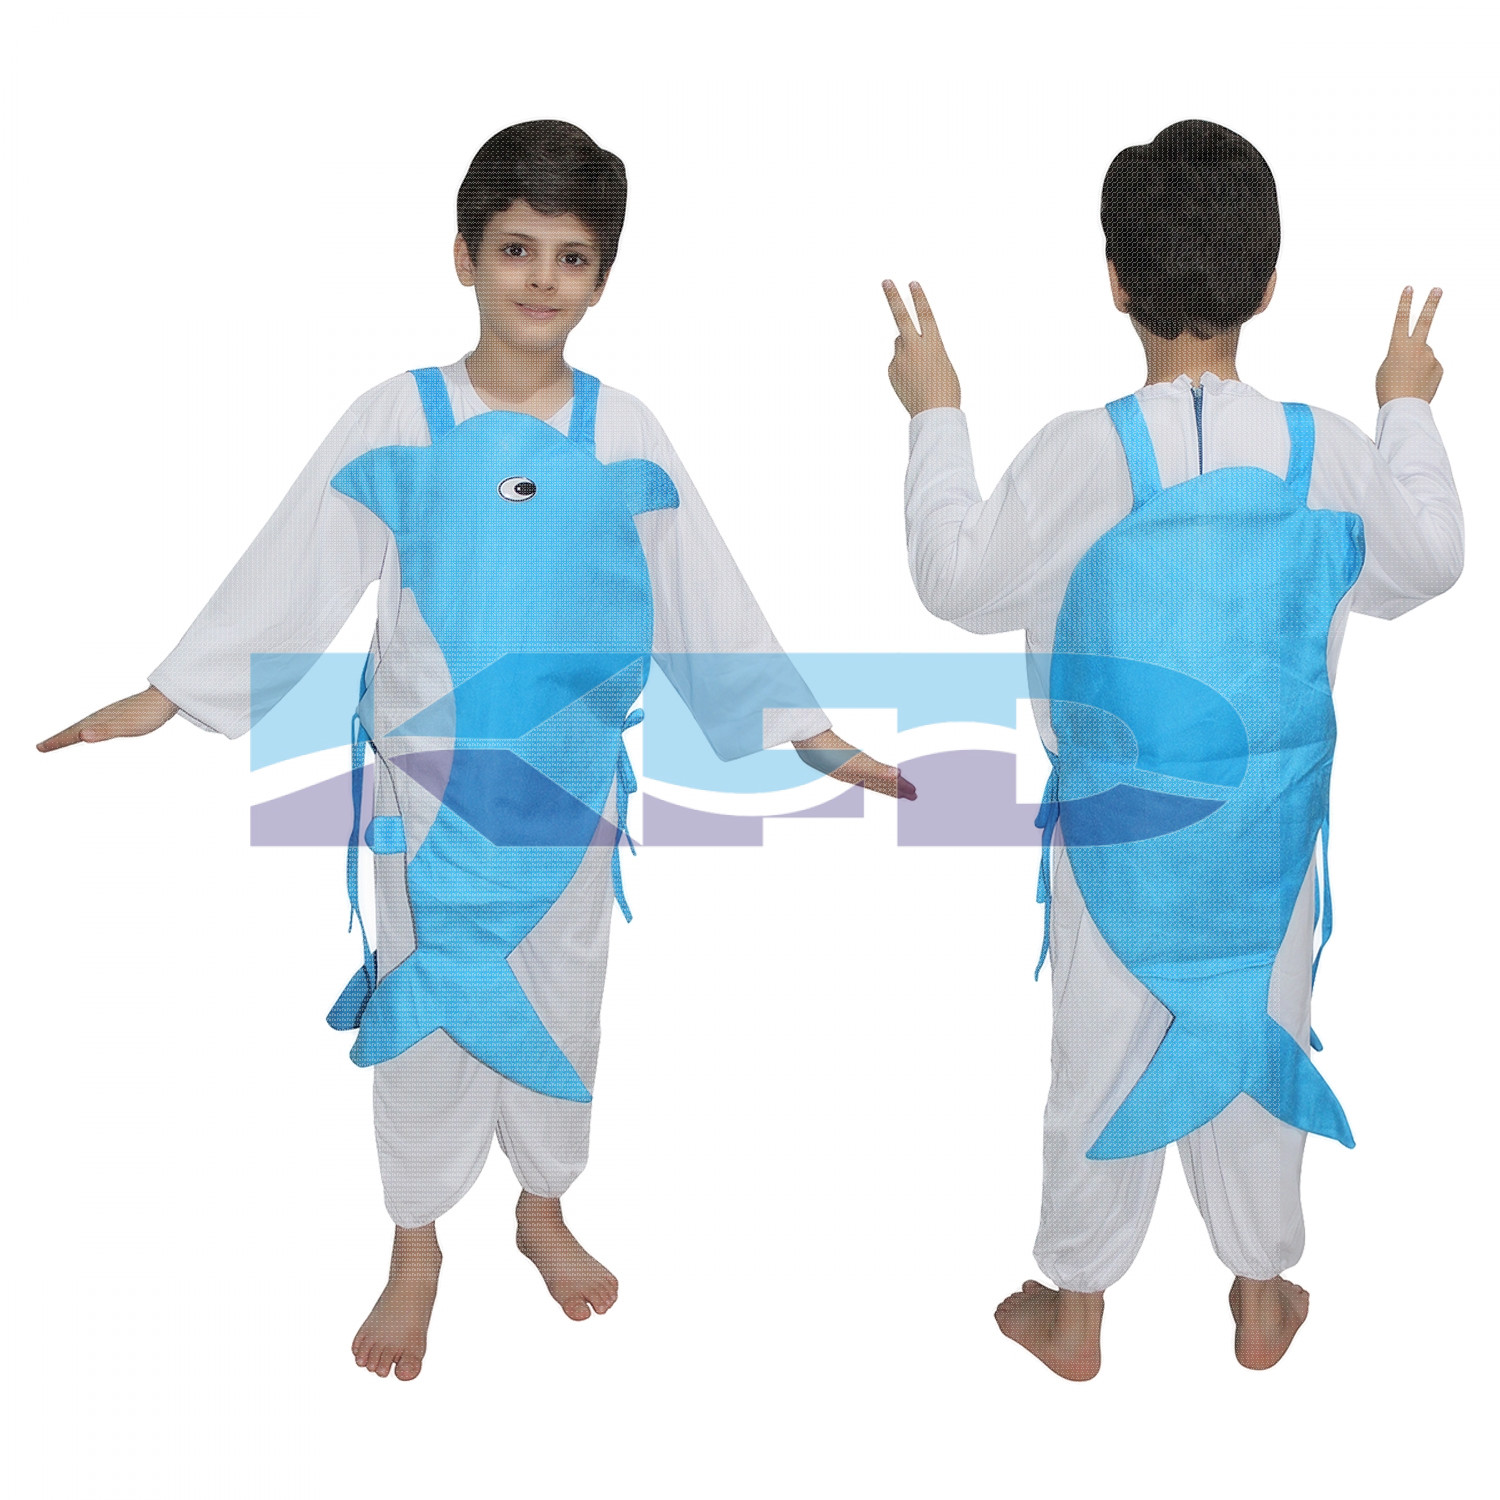 Dolphin fancy dress for kids,Insect Costume for School Annual function/Theme Party/Competition/Stage Shows Dress